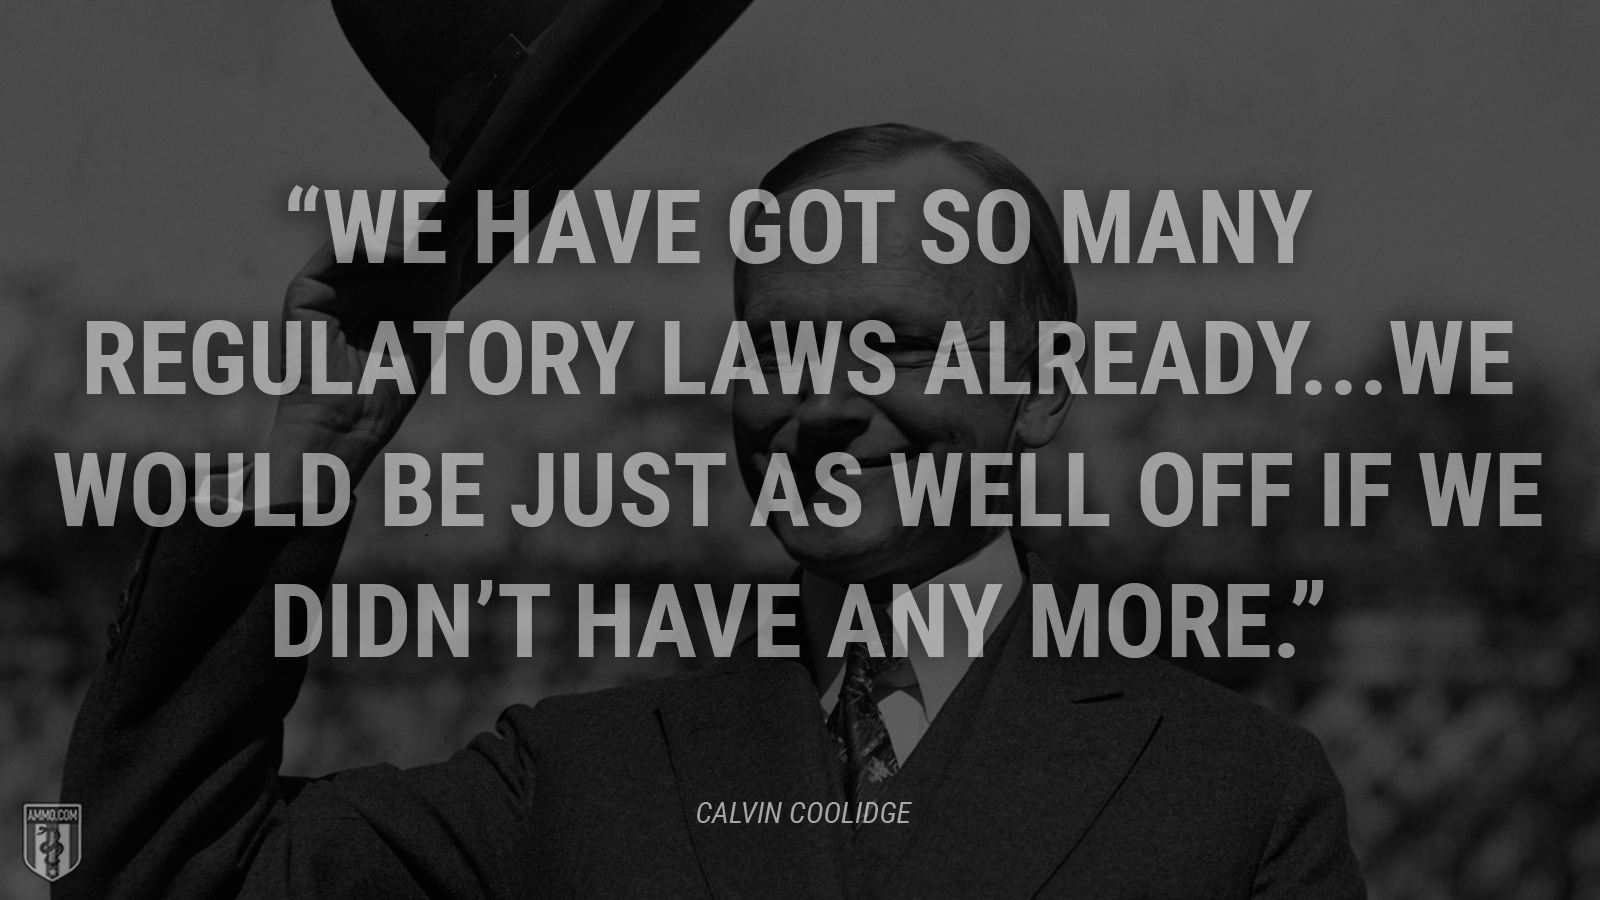 """We have got so many regulatory laws already...we would be just as well off if we didn't have any more."" - Calvin Coolidge"